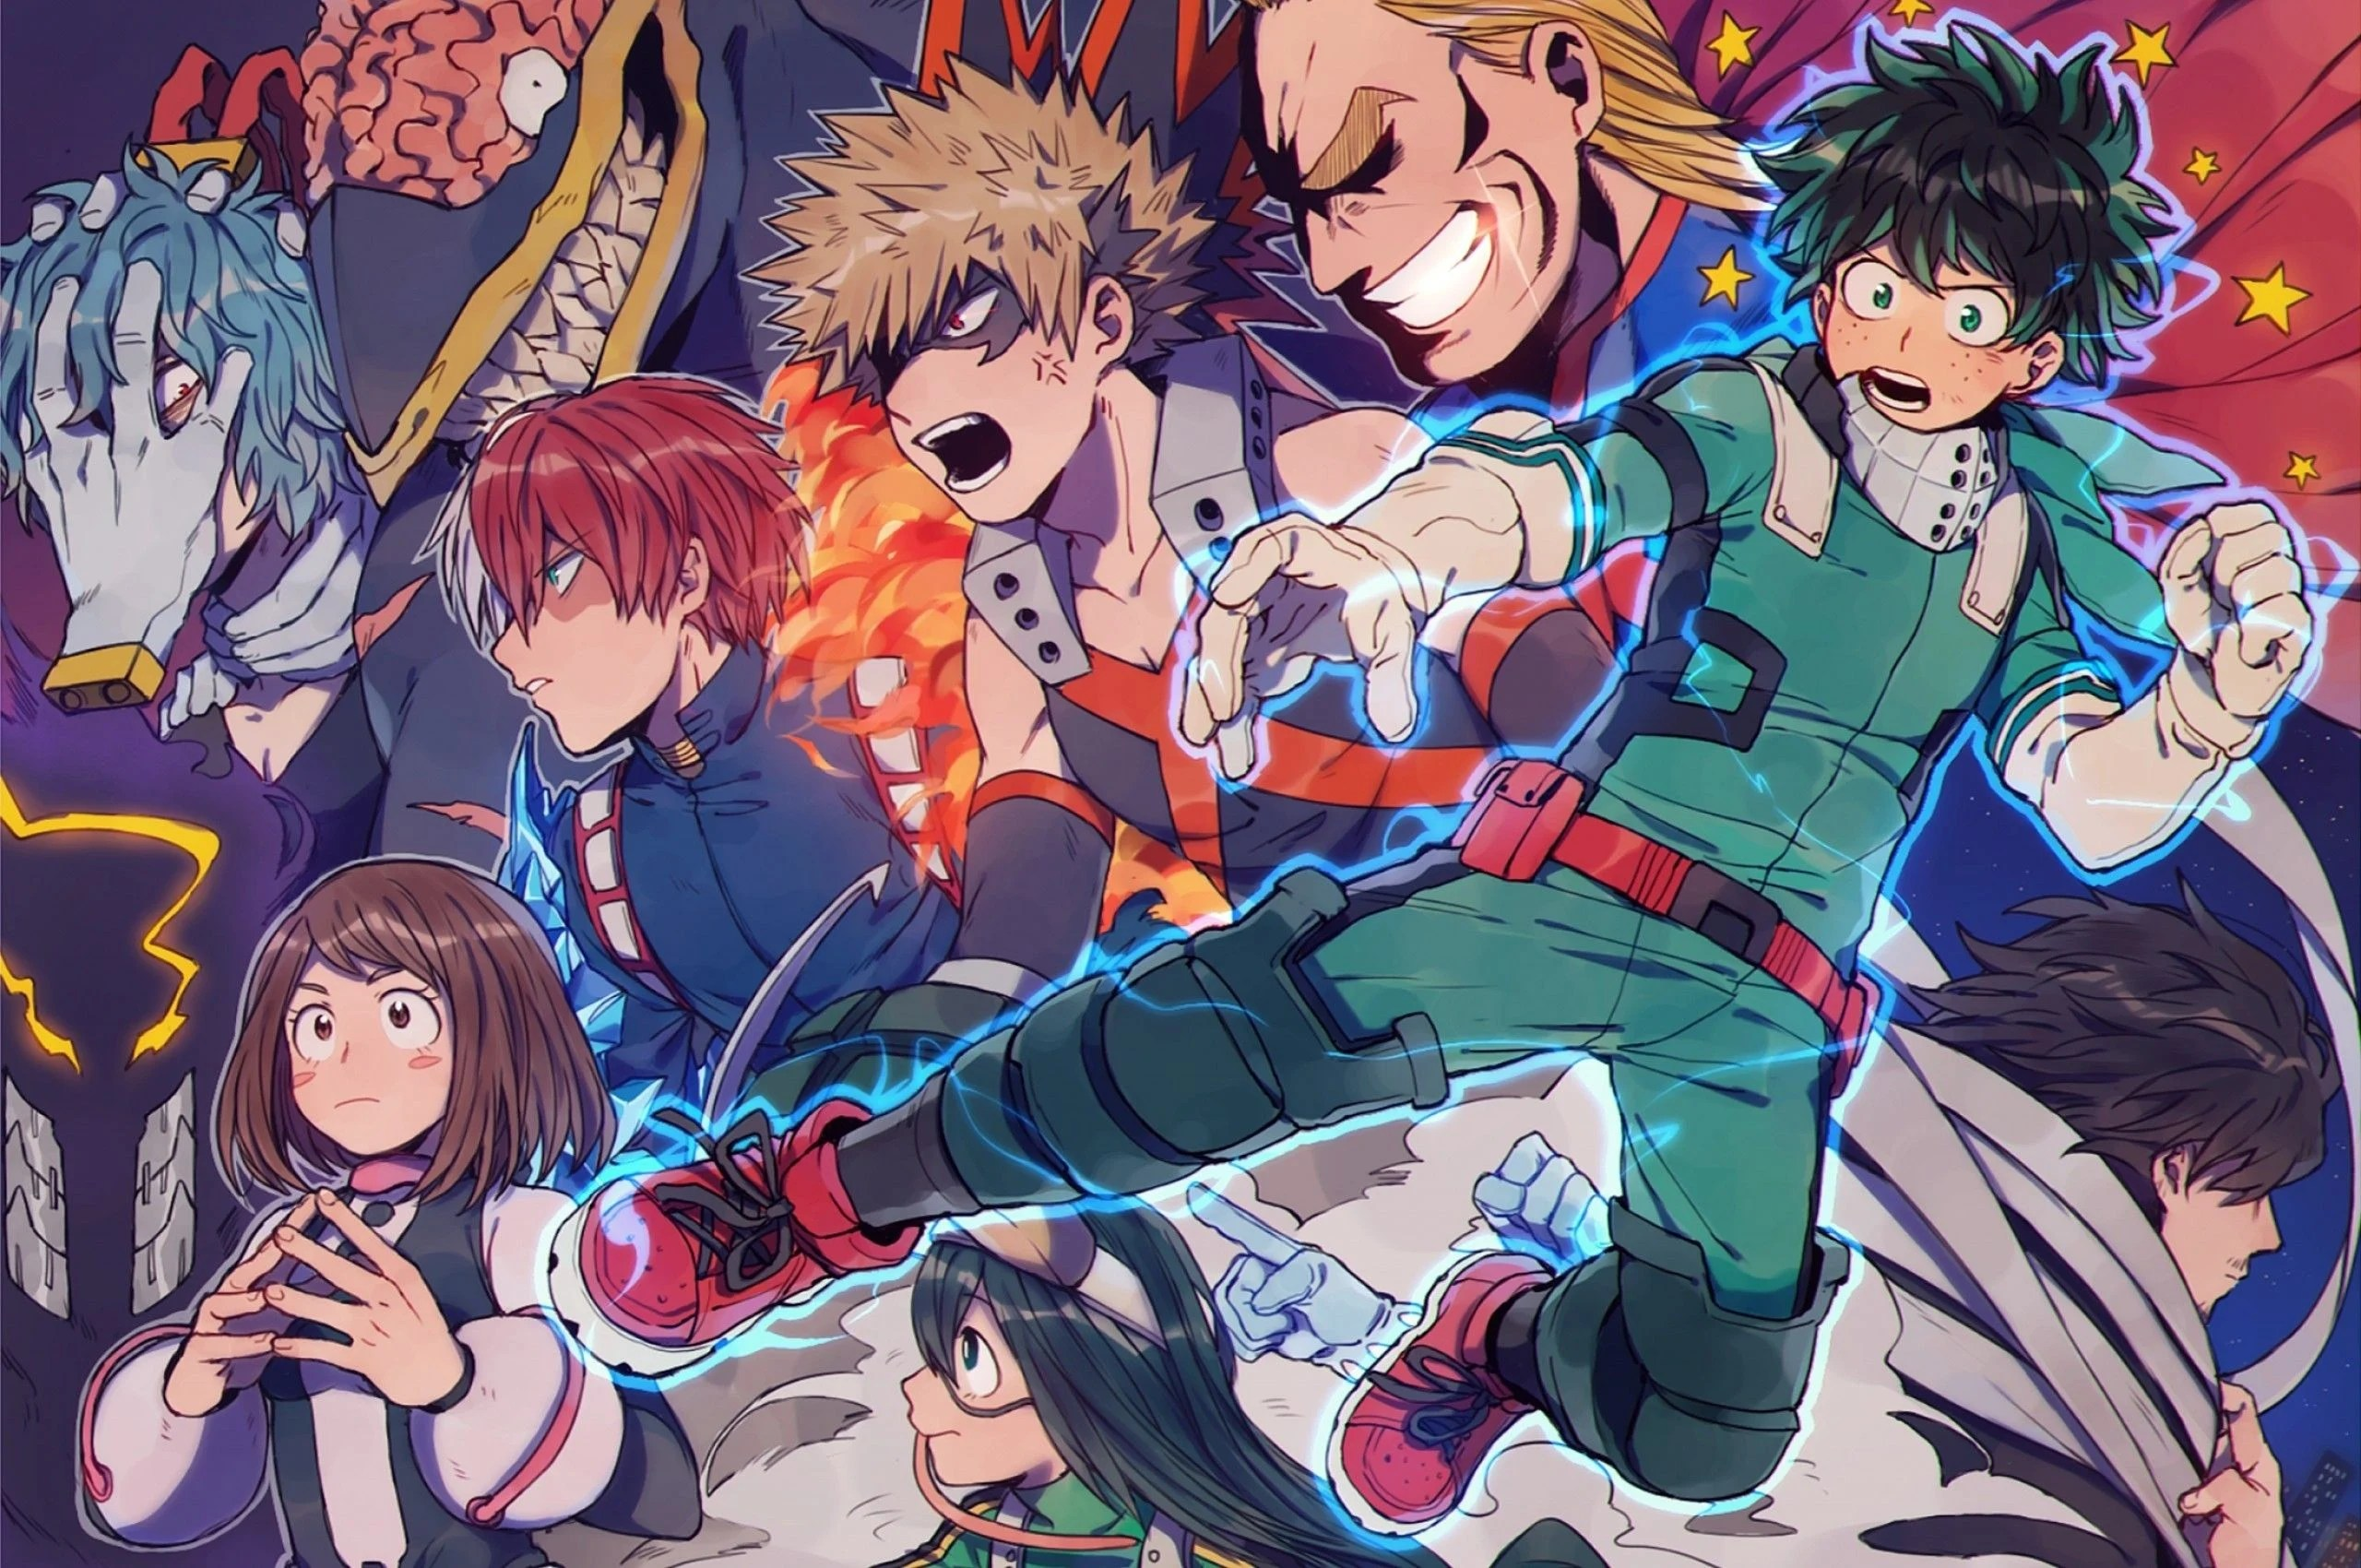 2800+ my hero academia hd wallpapers background images › on roundup of the best education on www.alphacoders.com. My Hero Academia Aesthetic Wallpapers - Top Free My Hero ...